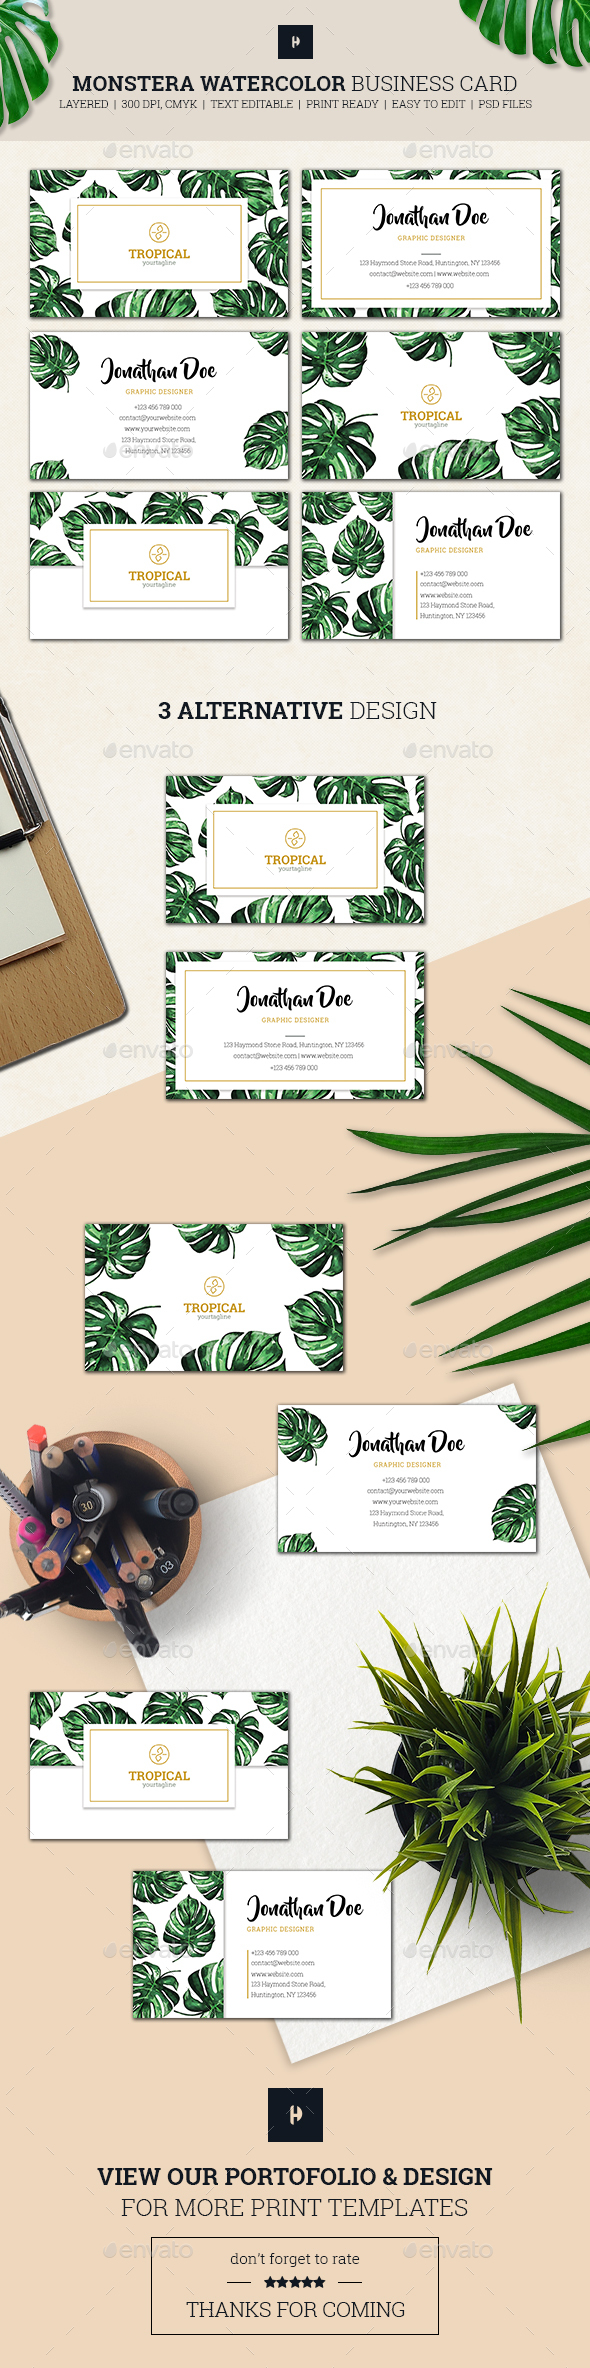 Monstera Watercolor Business Card 01 - Business Cards Print